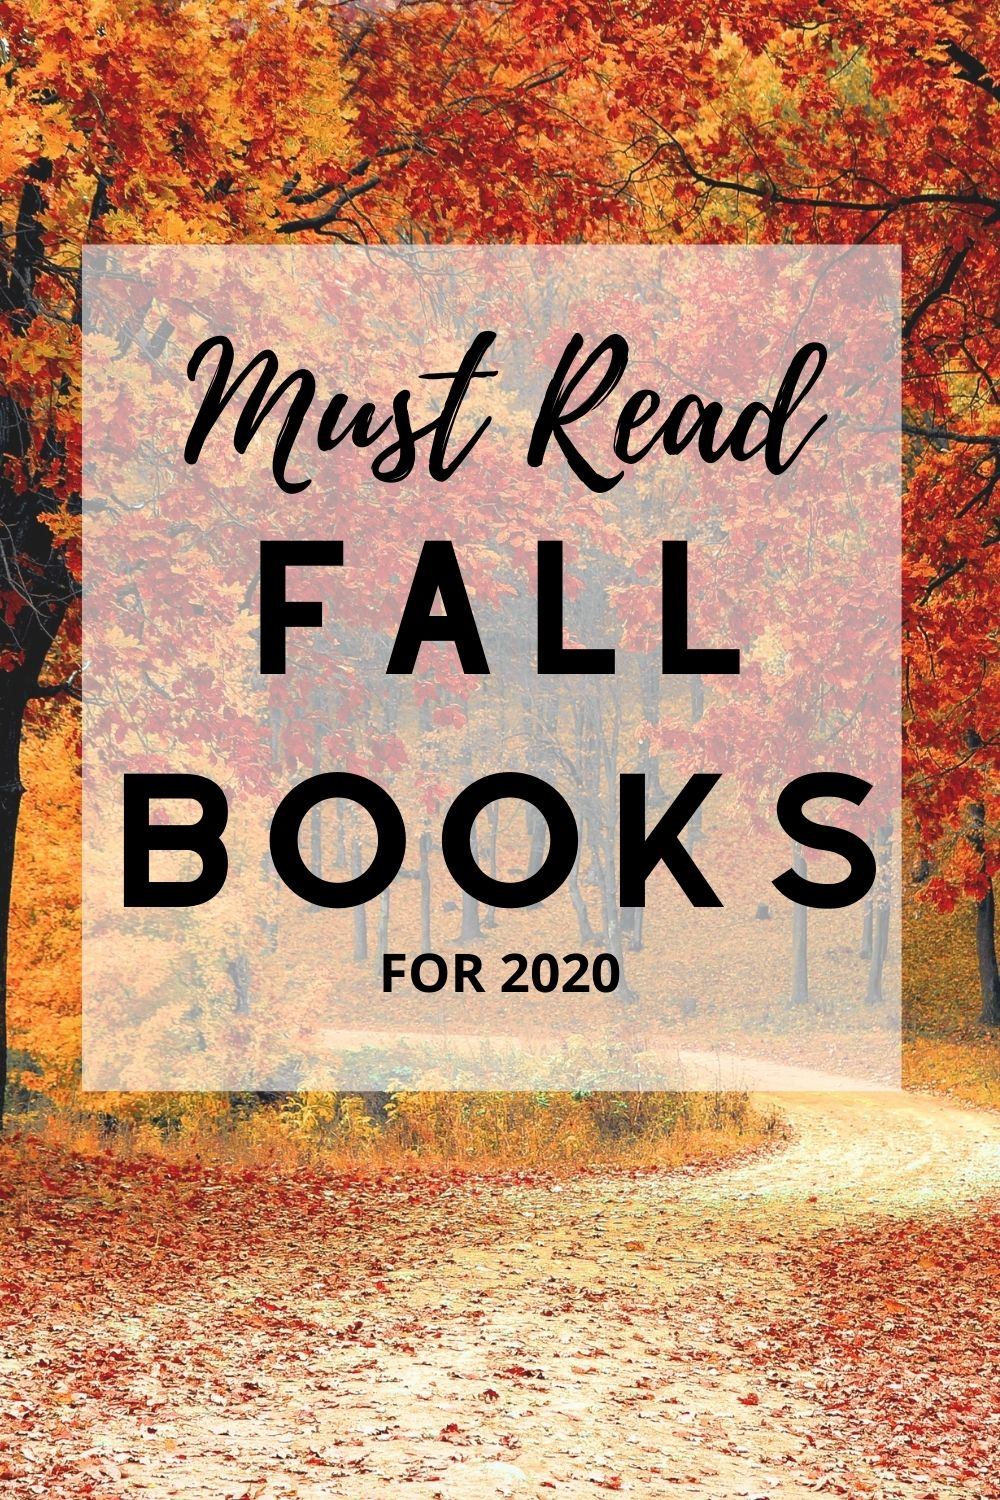 Must Read Fall Books For 2020